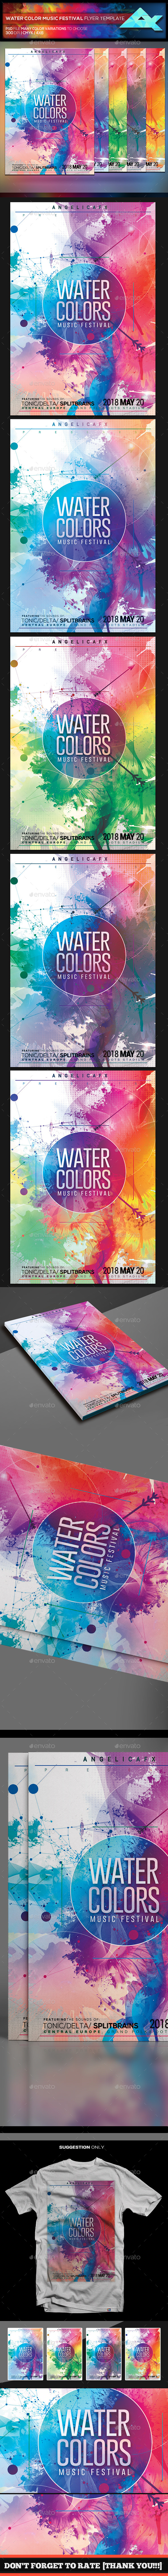 Water Color Music Festival Flyer Template - Flyers Print Templates